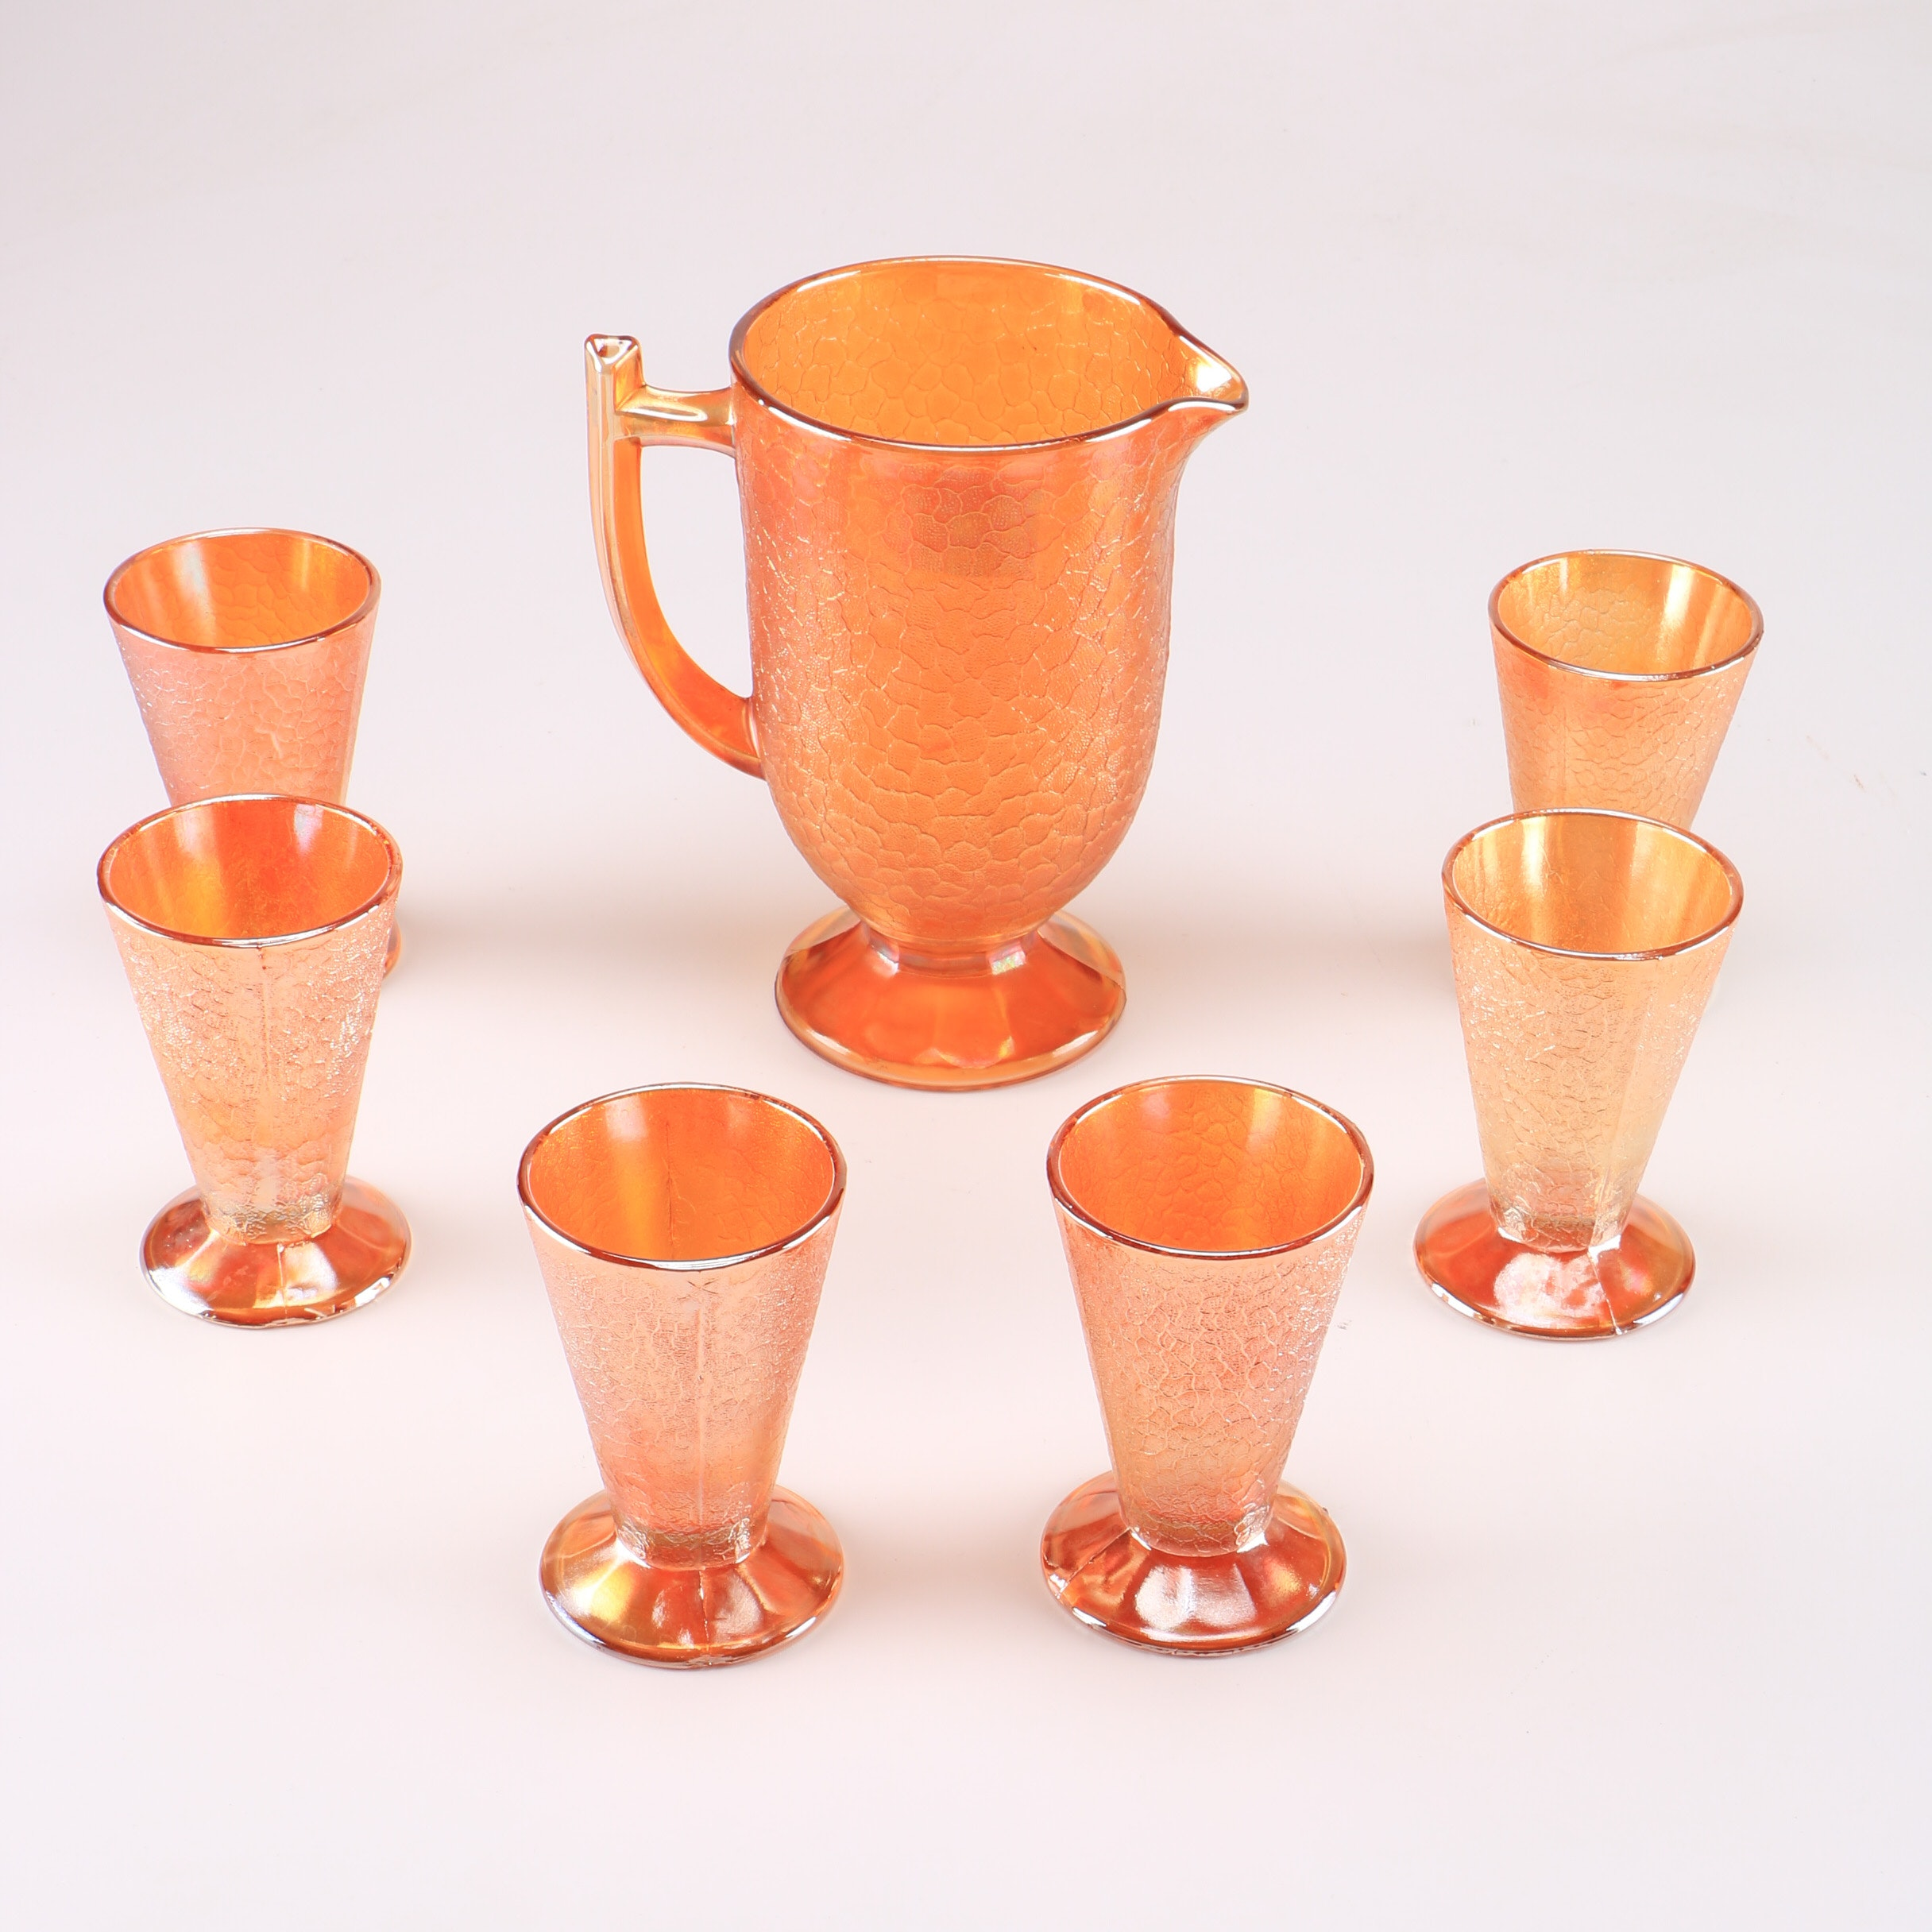 Collection of Carnival Glasss Marigold Pitcher and Goblets